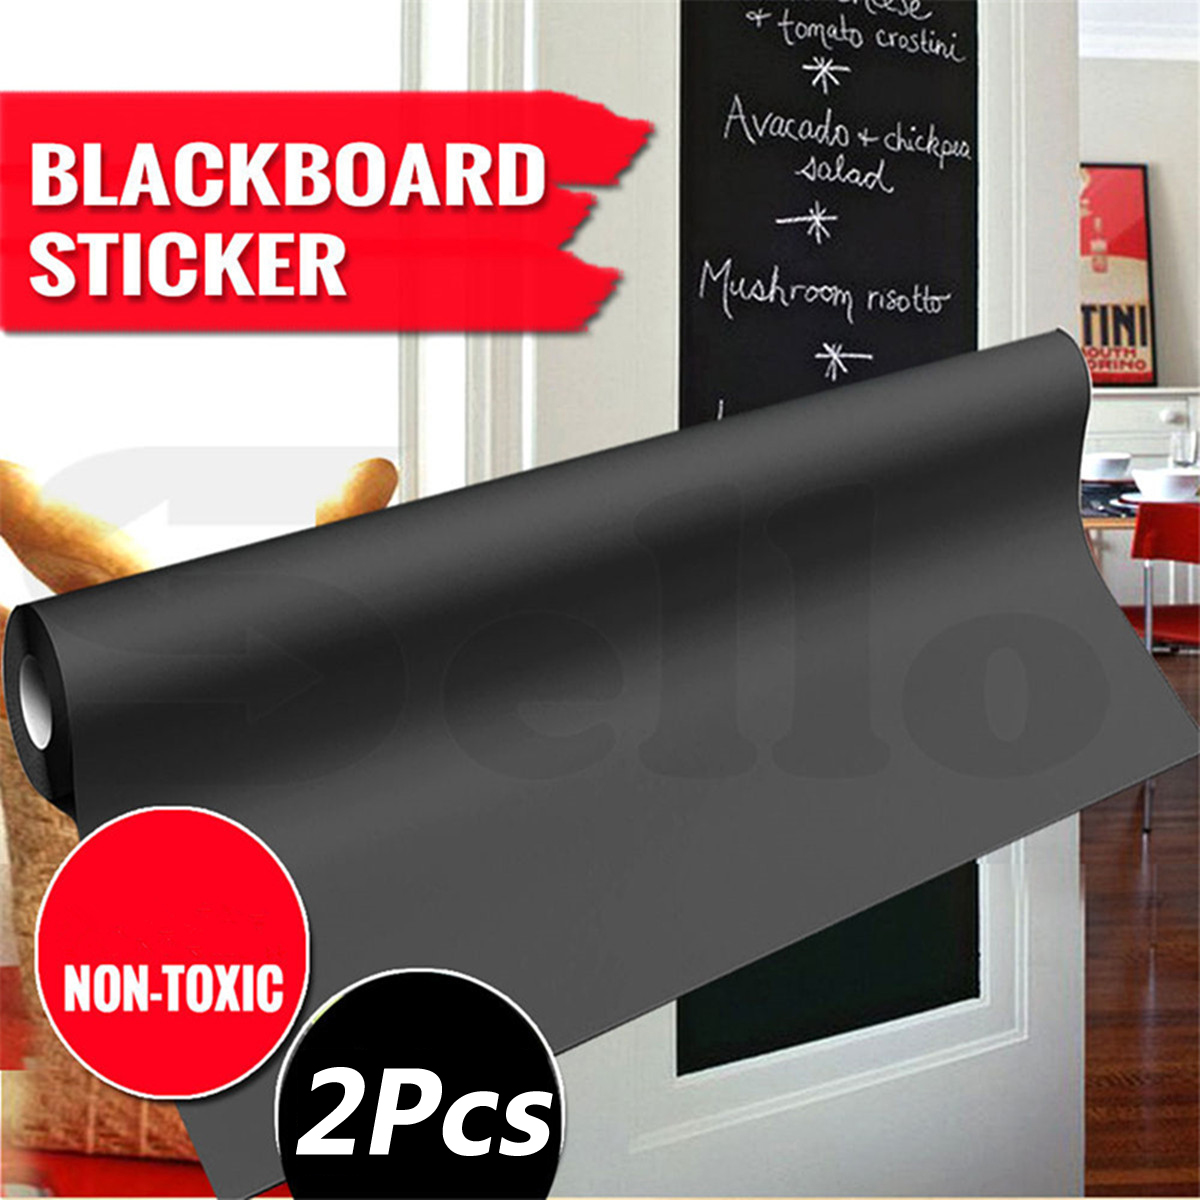 2Pcs 200CM x 60CM Blackboard Sticker Self-Adhesive Wall Sticker Wall Paper Chalkboard Contact Paper For School/ Office/ Home